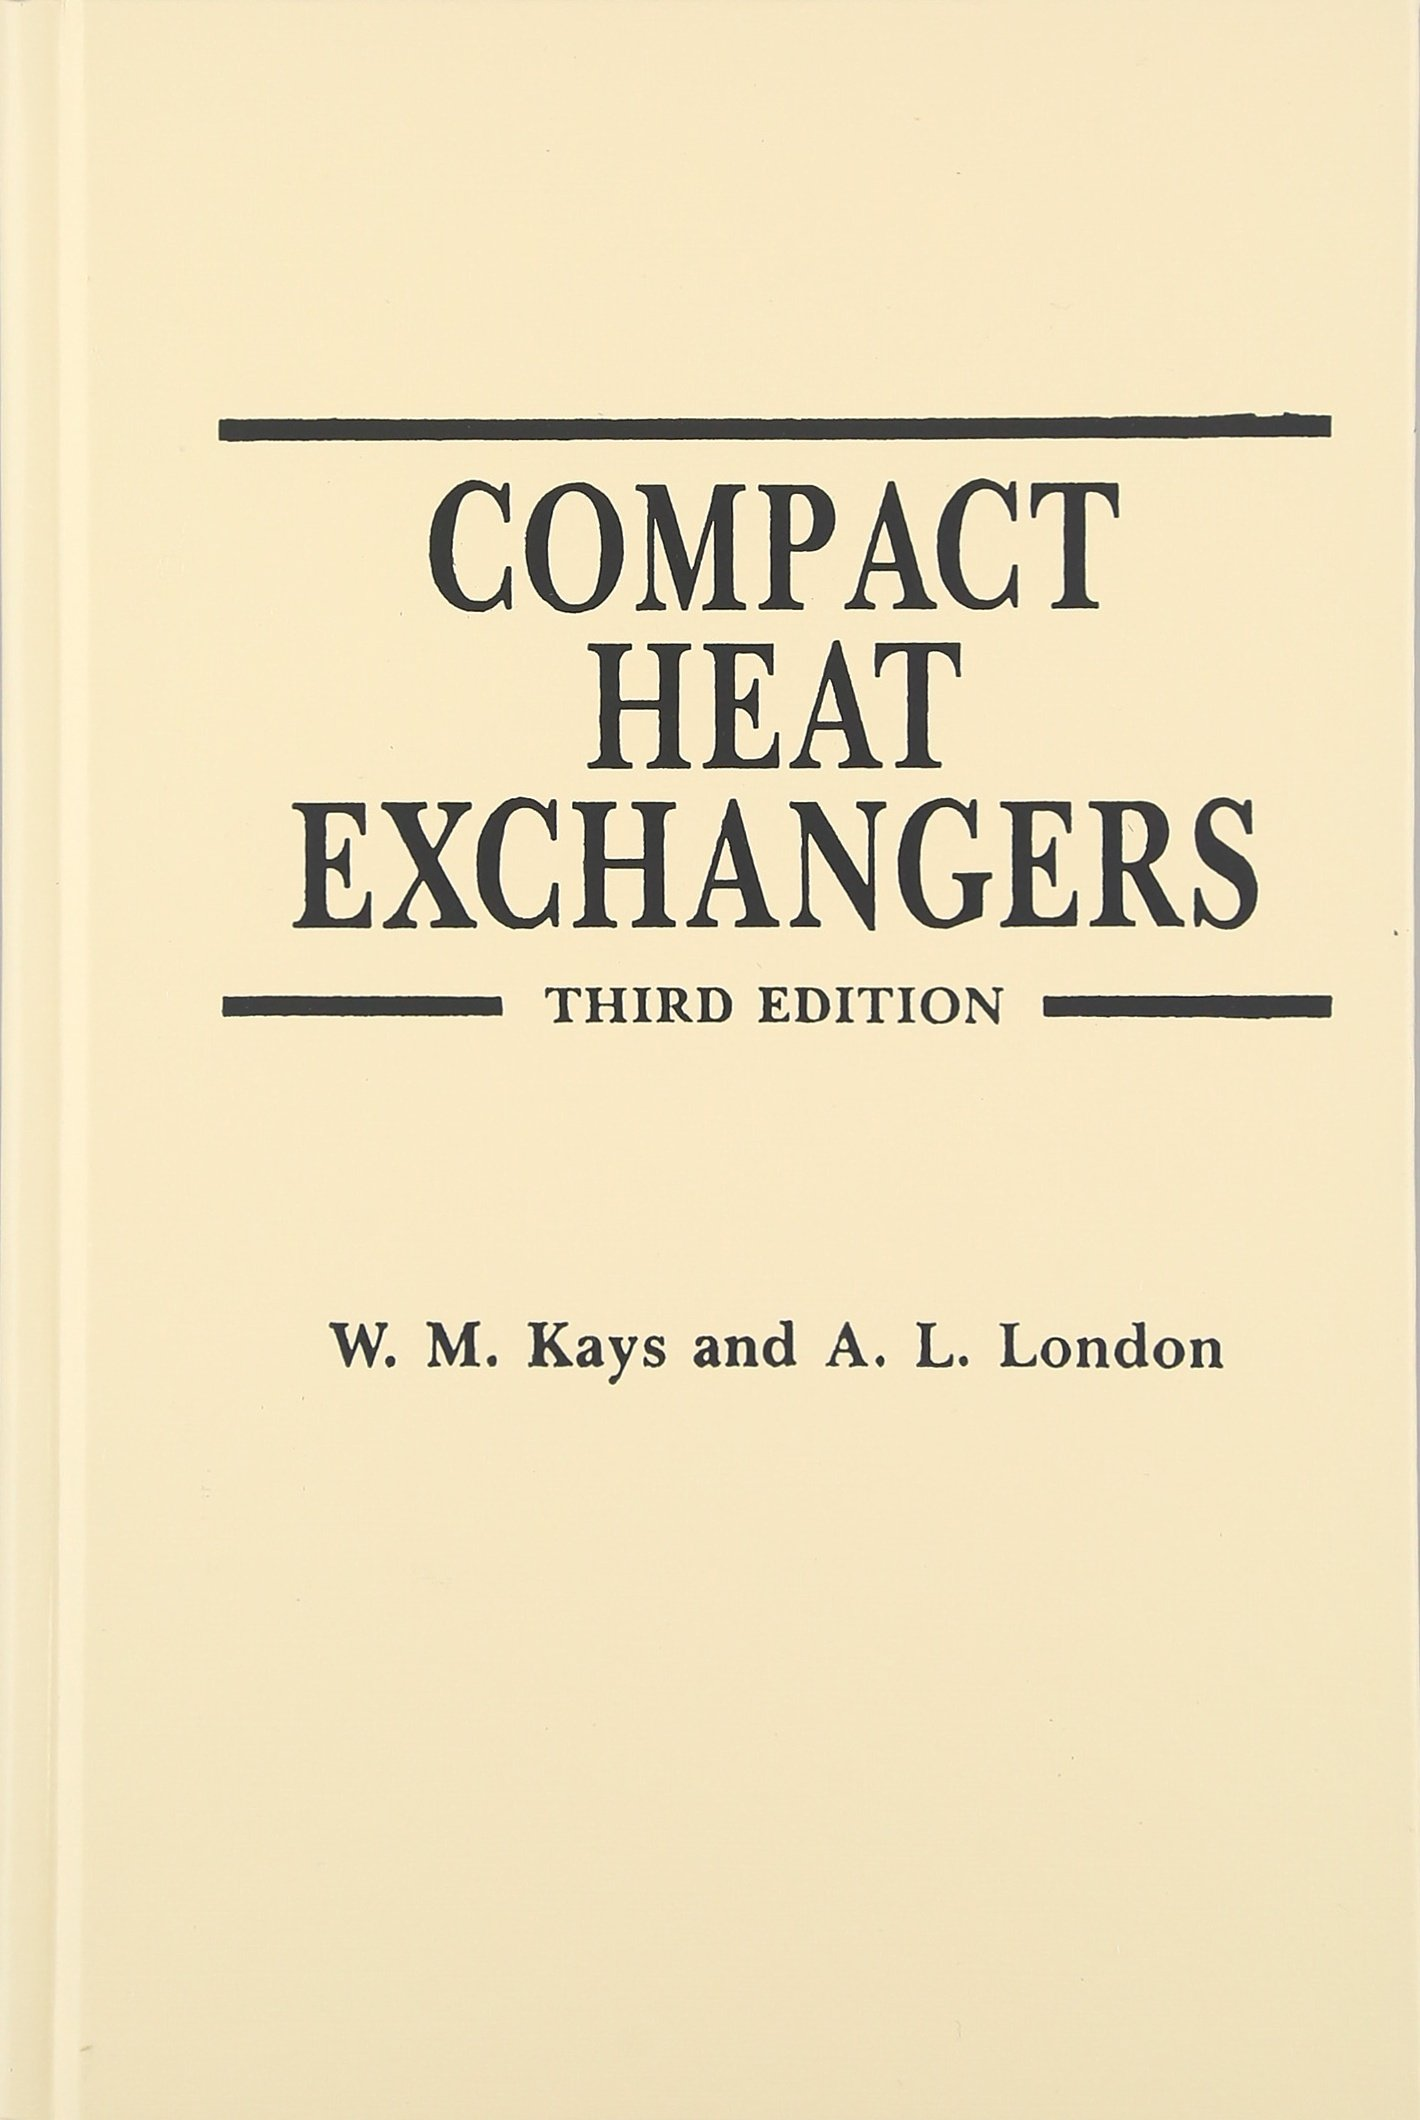 Buy compact heat exchangers book online at low prices in india buy compact heat exchangers book online at low prices in india compact heat exchangers reviews ratings amazon fandeluxe Image collections